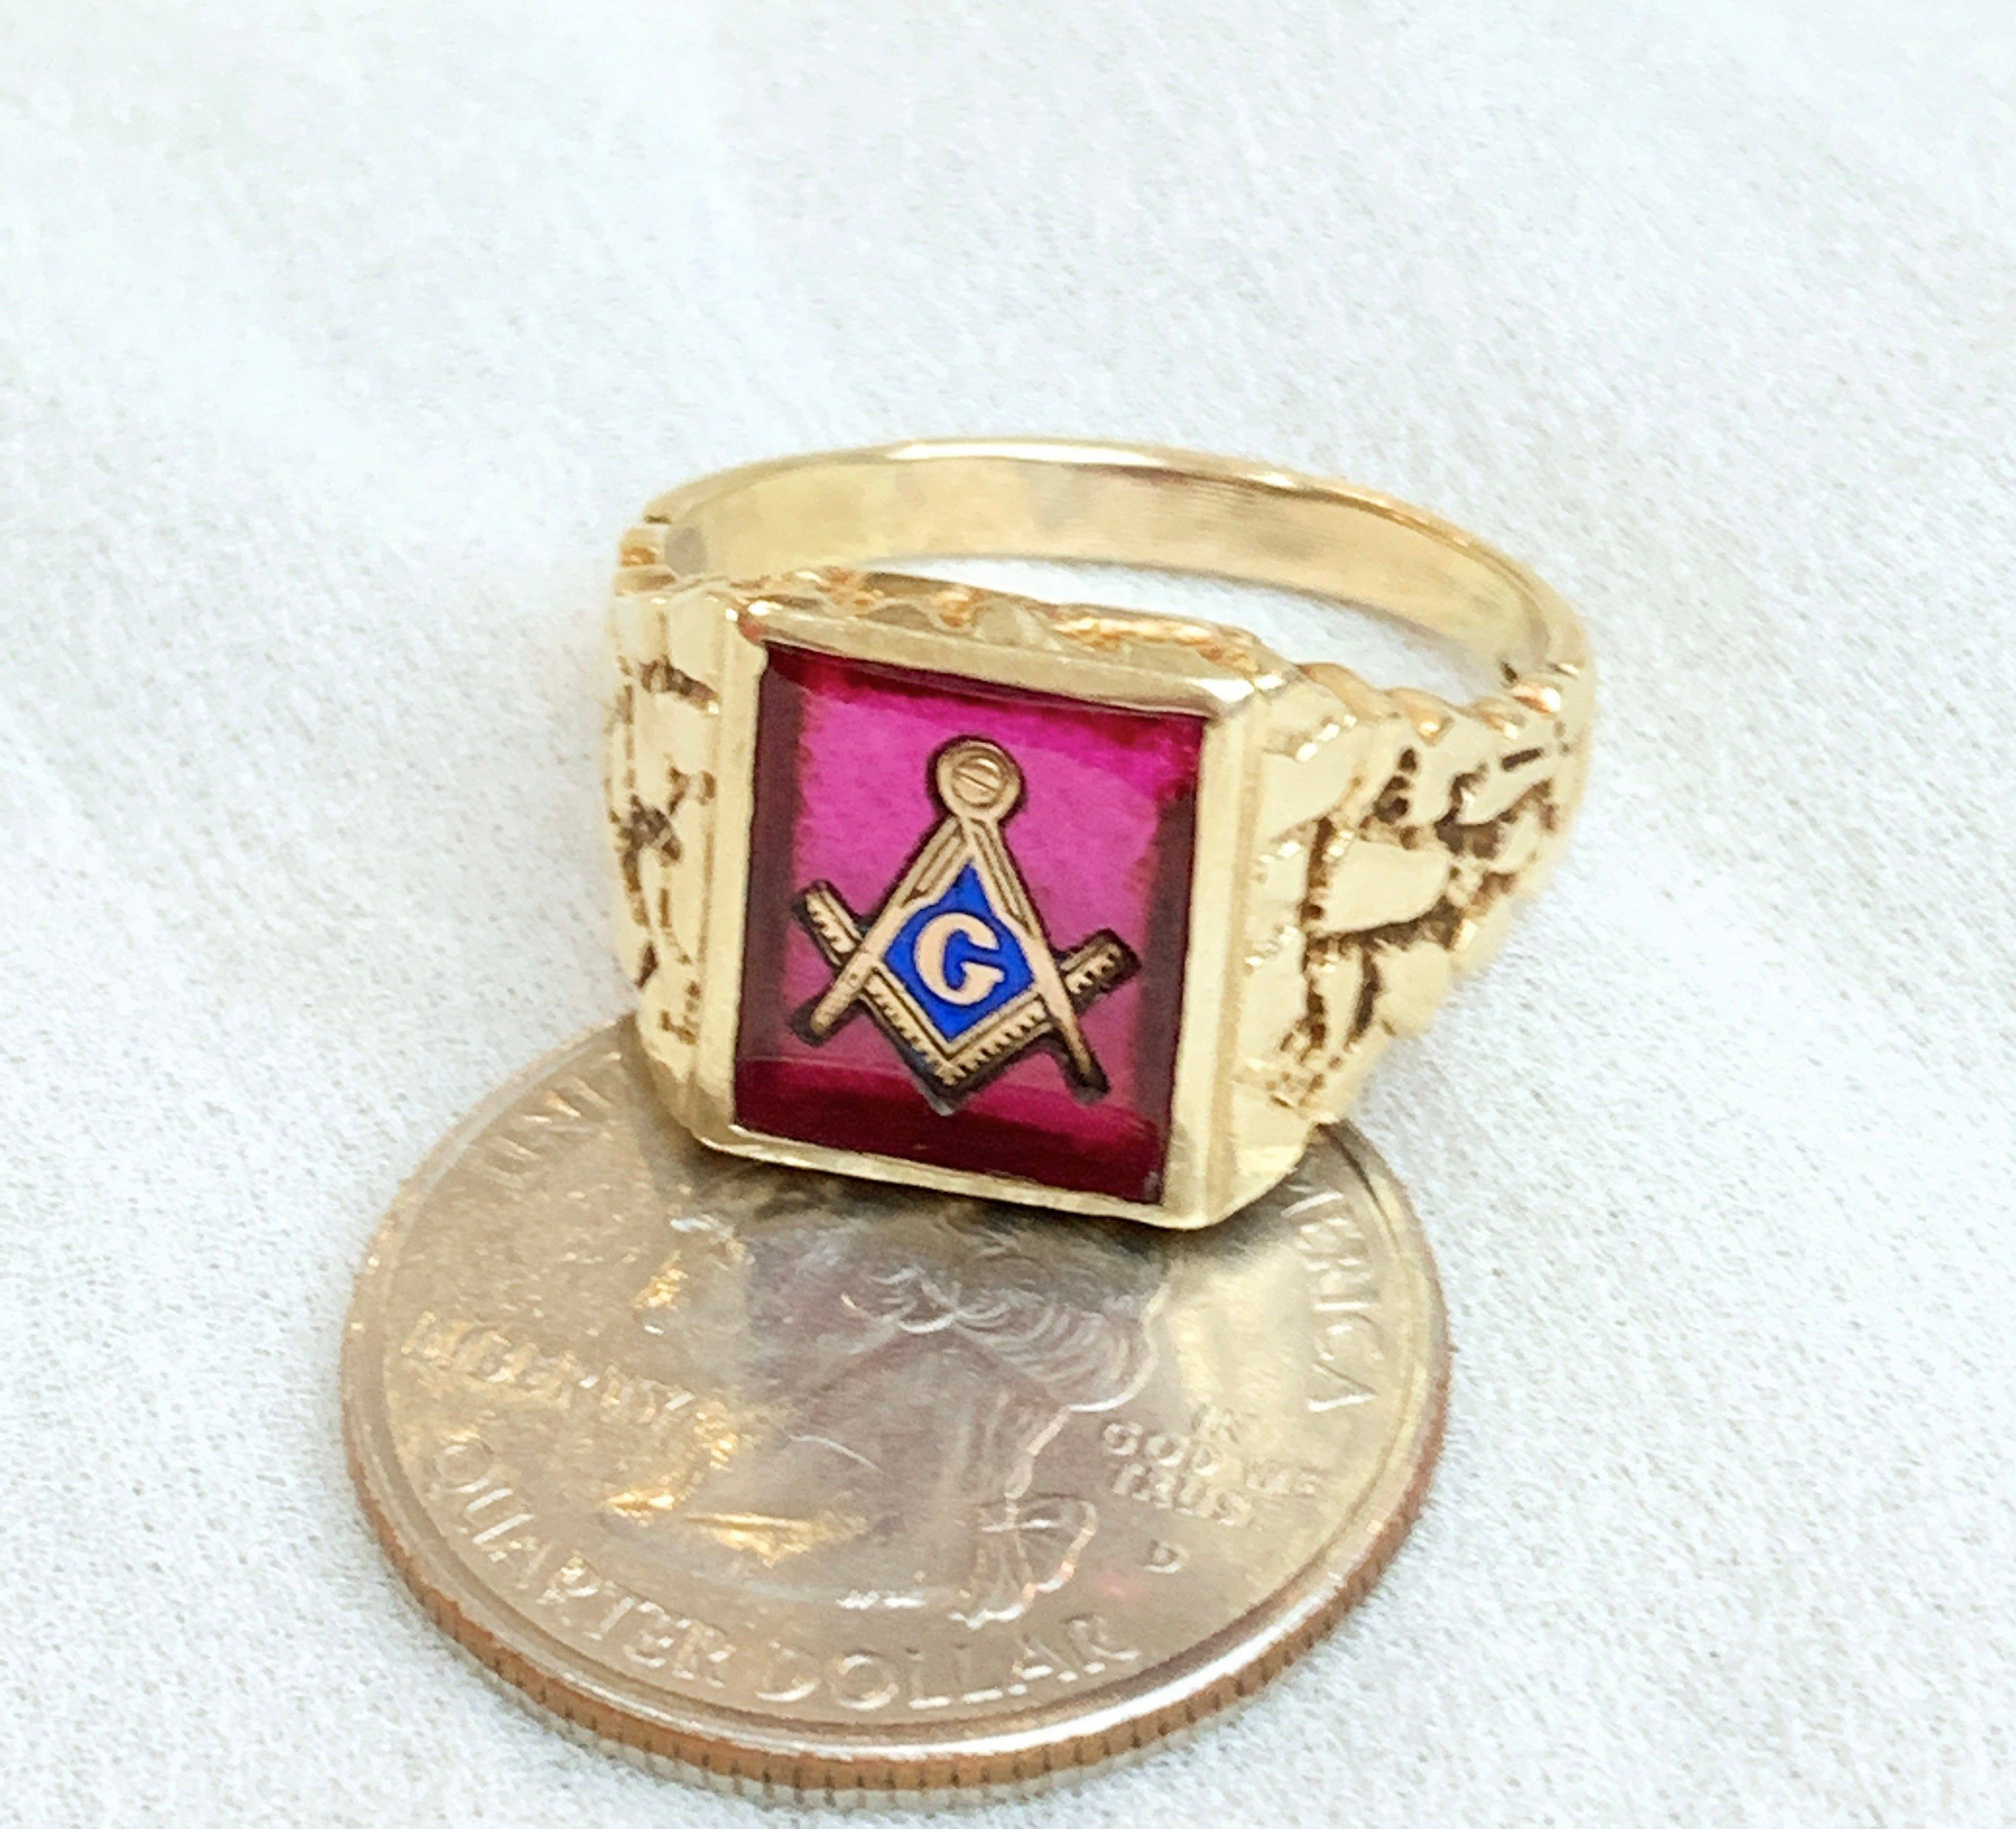 Gents 10k Yellow Gold Masonic Signet Ring Size 11 1 2 Vintage 10k Gold Blue Lodge Mason Ring Synthetic Red Ruby Blue Lodge Masonic Rings Gold Jewelry For Sale Masonic Ring